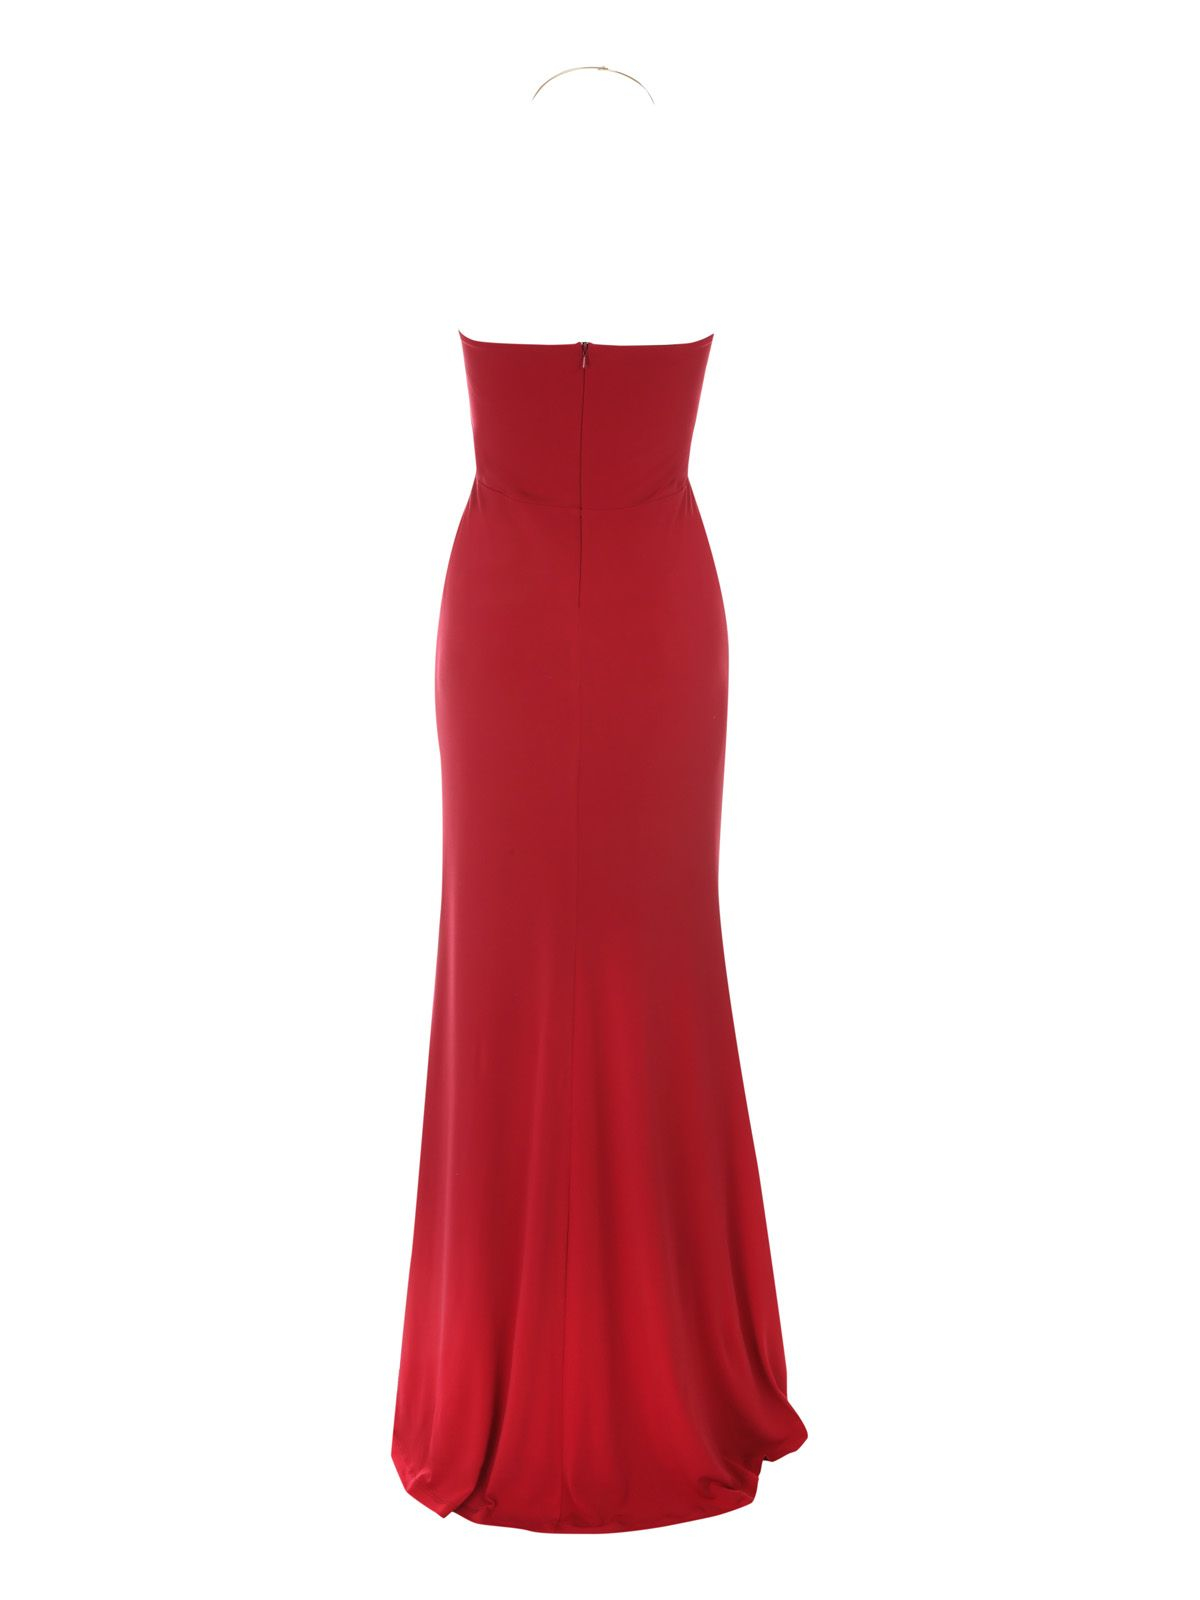 Jane norman red evening dresses - Dress womans life